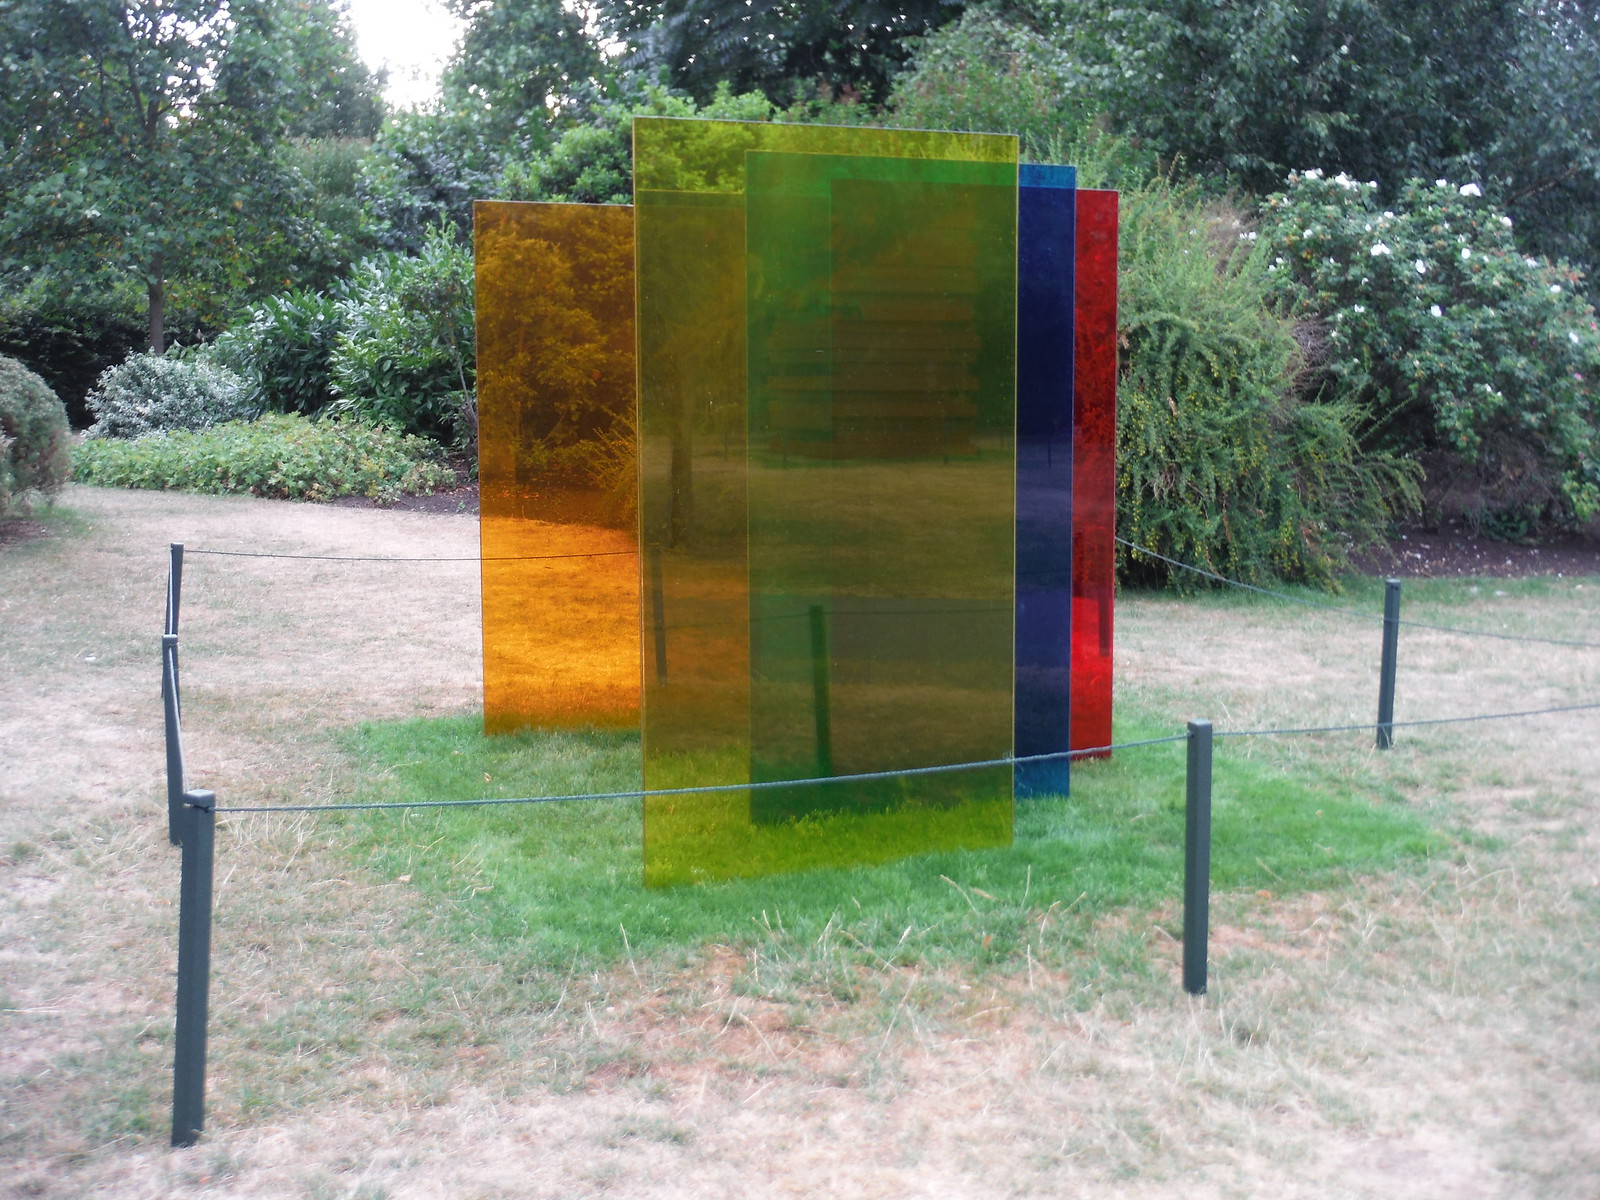 Frieze Sculpture Park 2018: Rana Begum, 'No. 814' SWC Short Walk 6 - Regent's Park and Primrose Hill